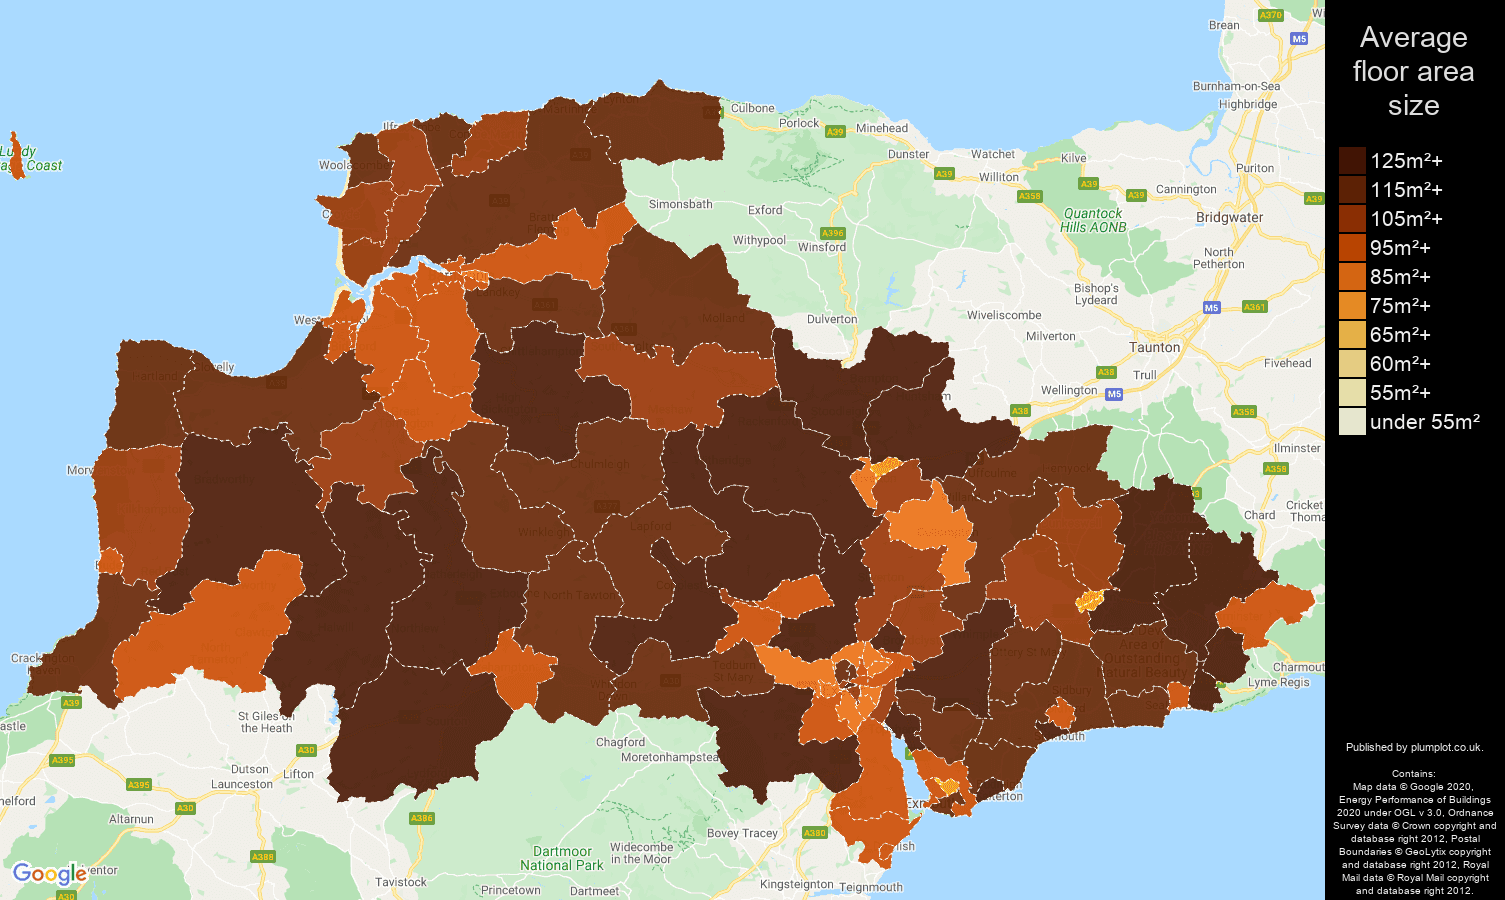 Exeter map of average floor area size of houses